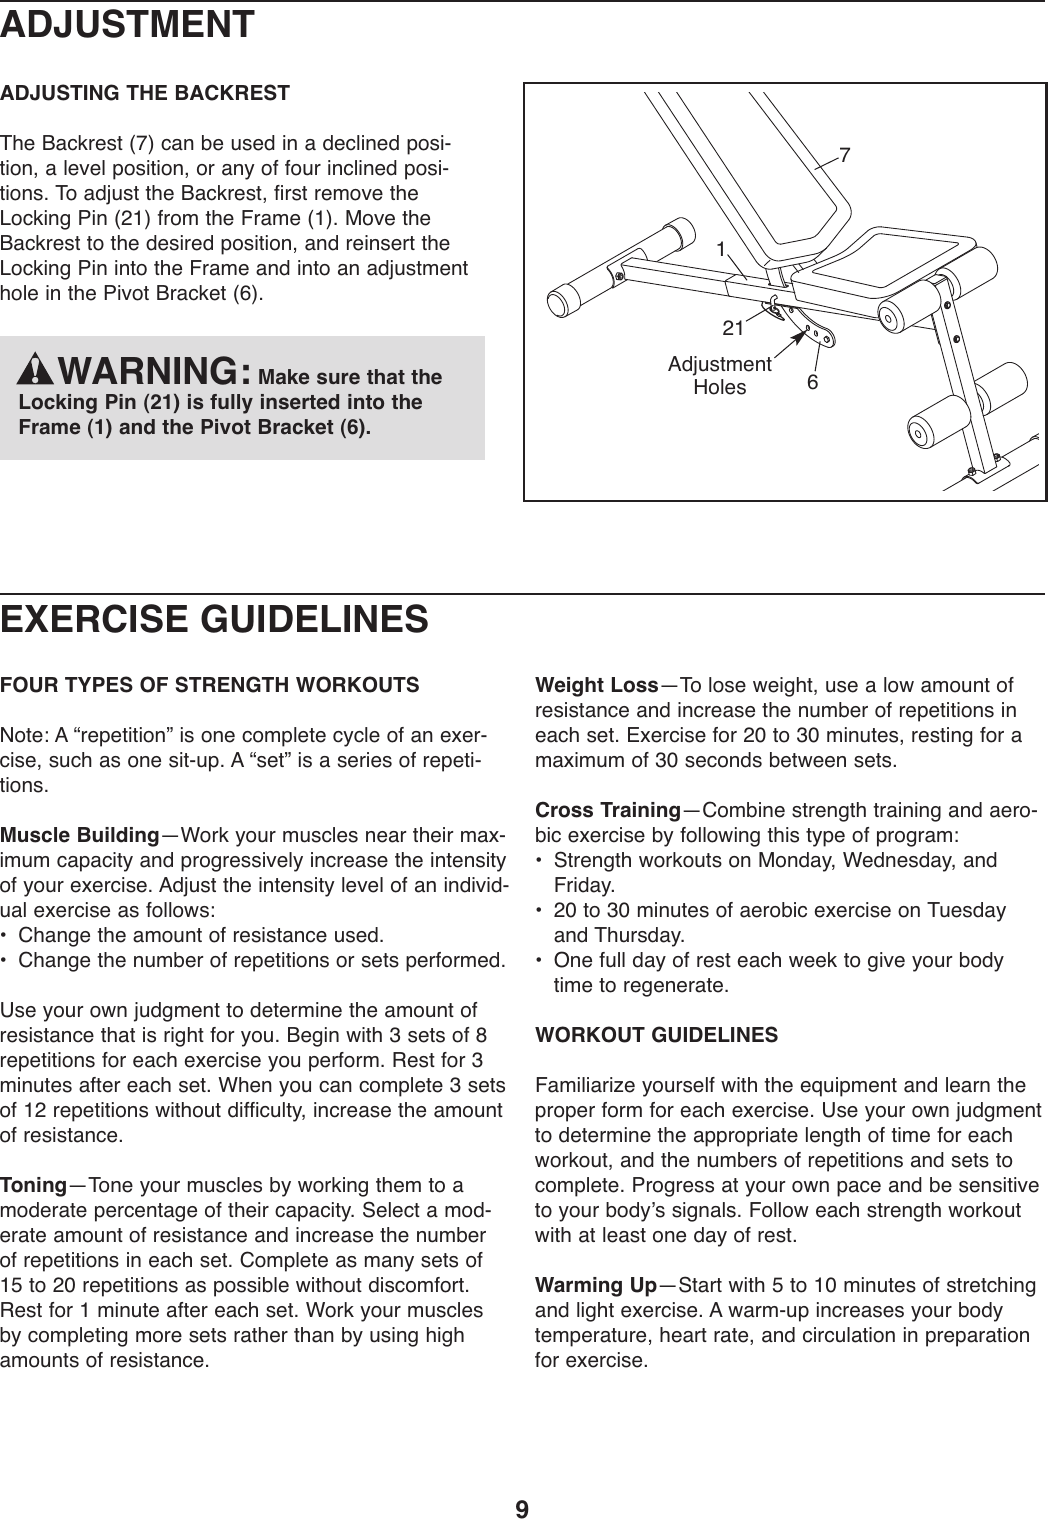 Weider Pro 230 Bench 30279 Users Manual